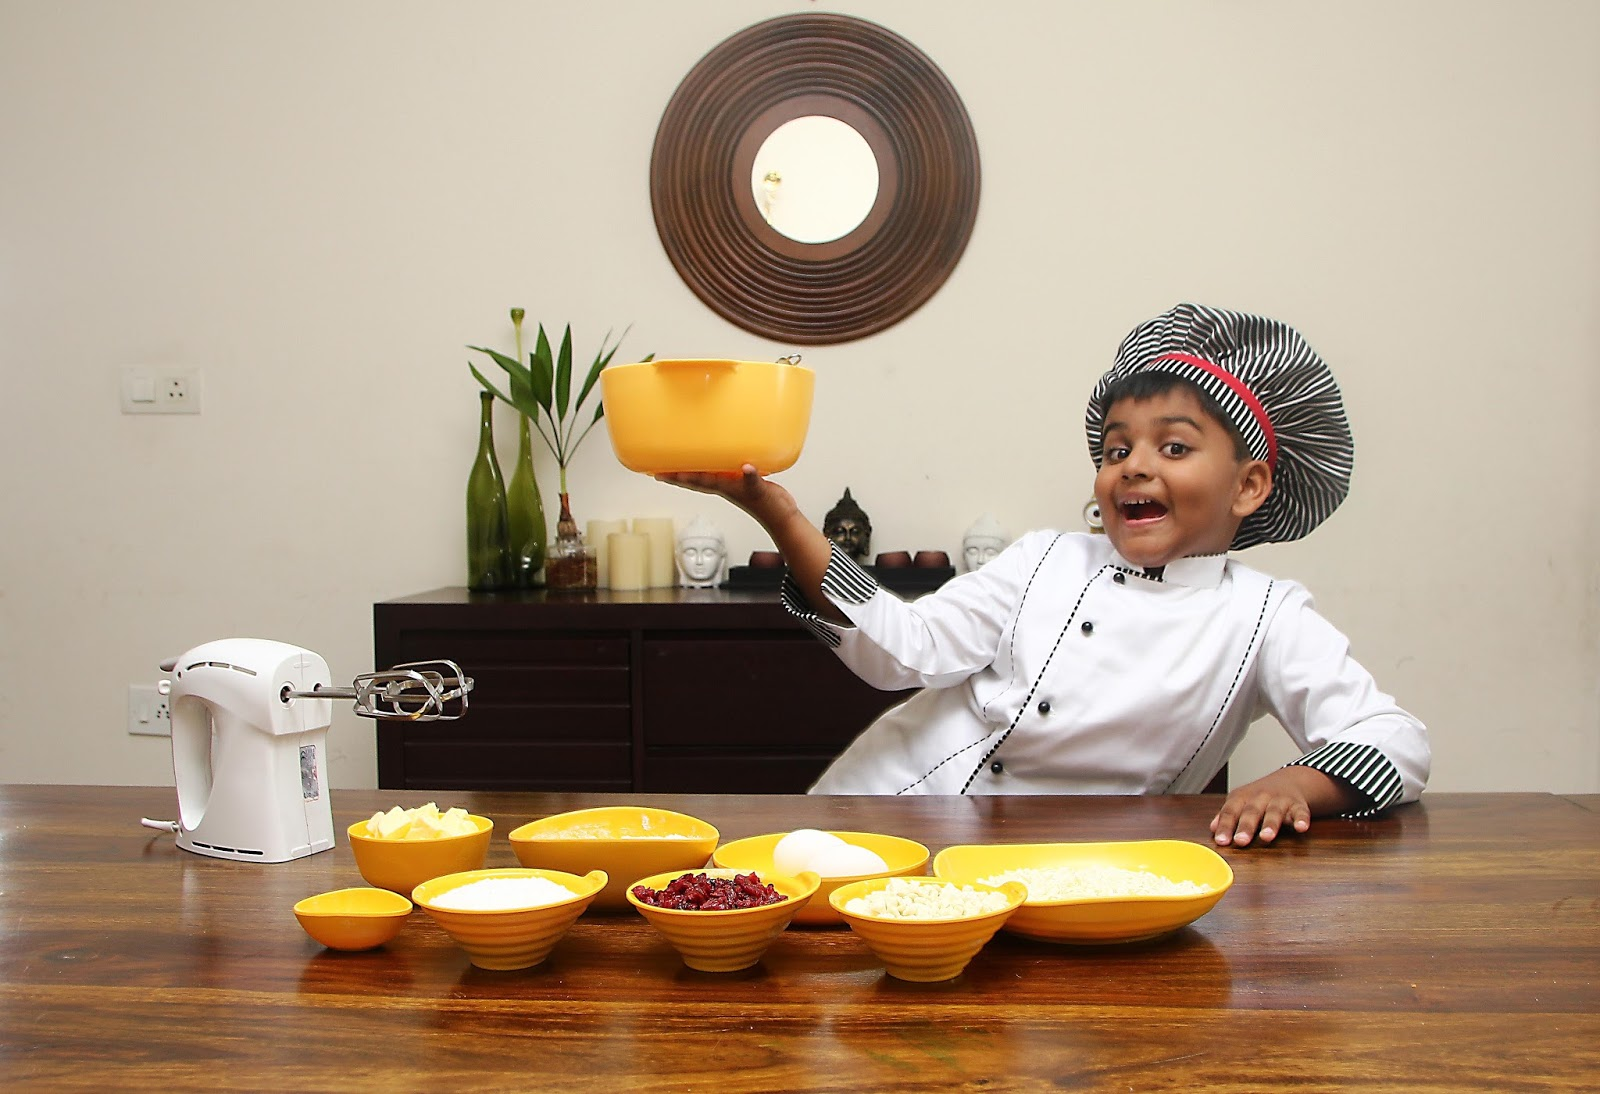 1st name all on people named nihal songs books gift ideas pics - Six Year Old Nihal Kicha Raj Has His Own Cooking Channel On You Tube Recently He Gained Global Fame When He Appeared On The Ellen Degeneres Show